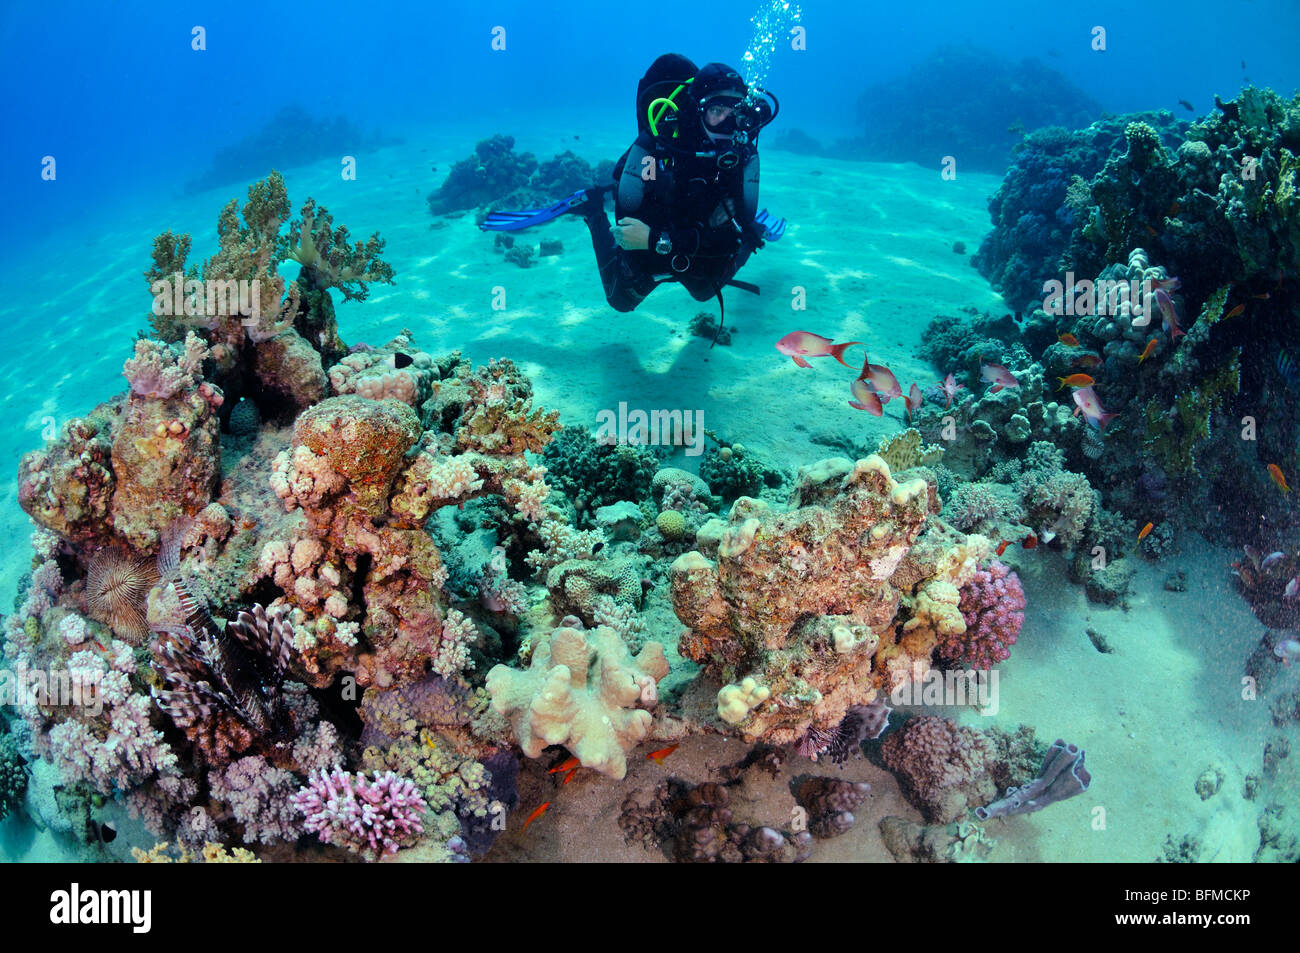 Scuba diver coral reef and colourful fish. 'Red Sea' - Stock Image